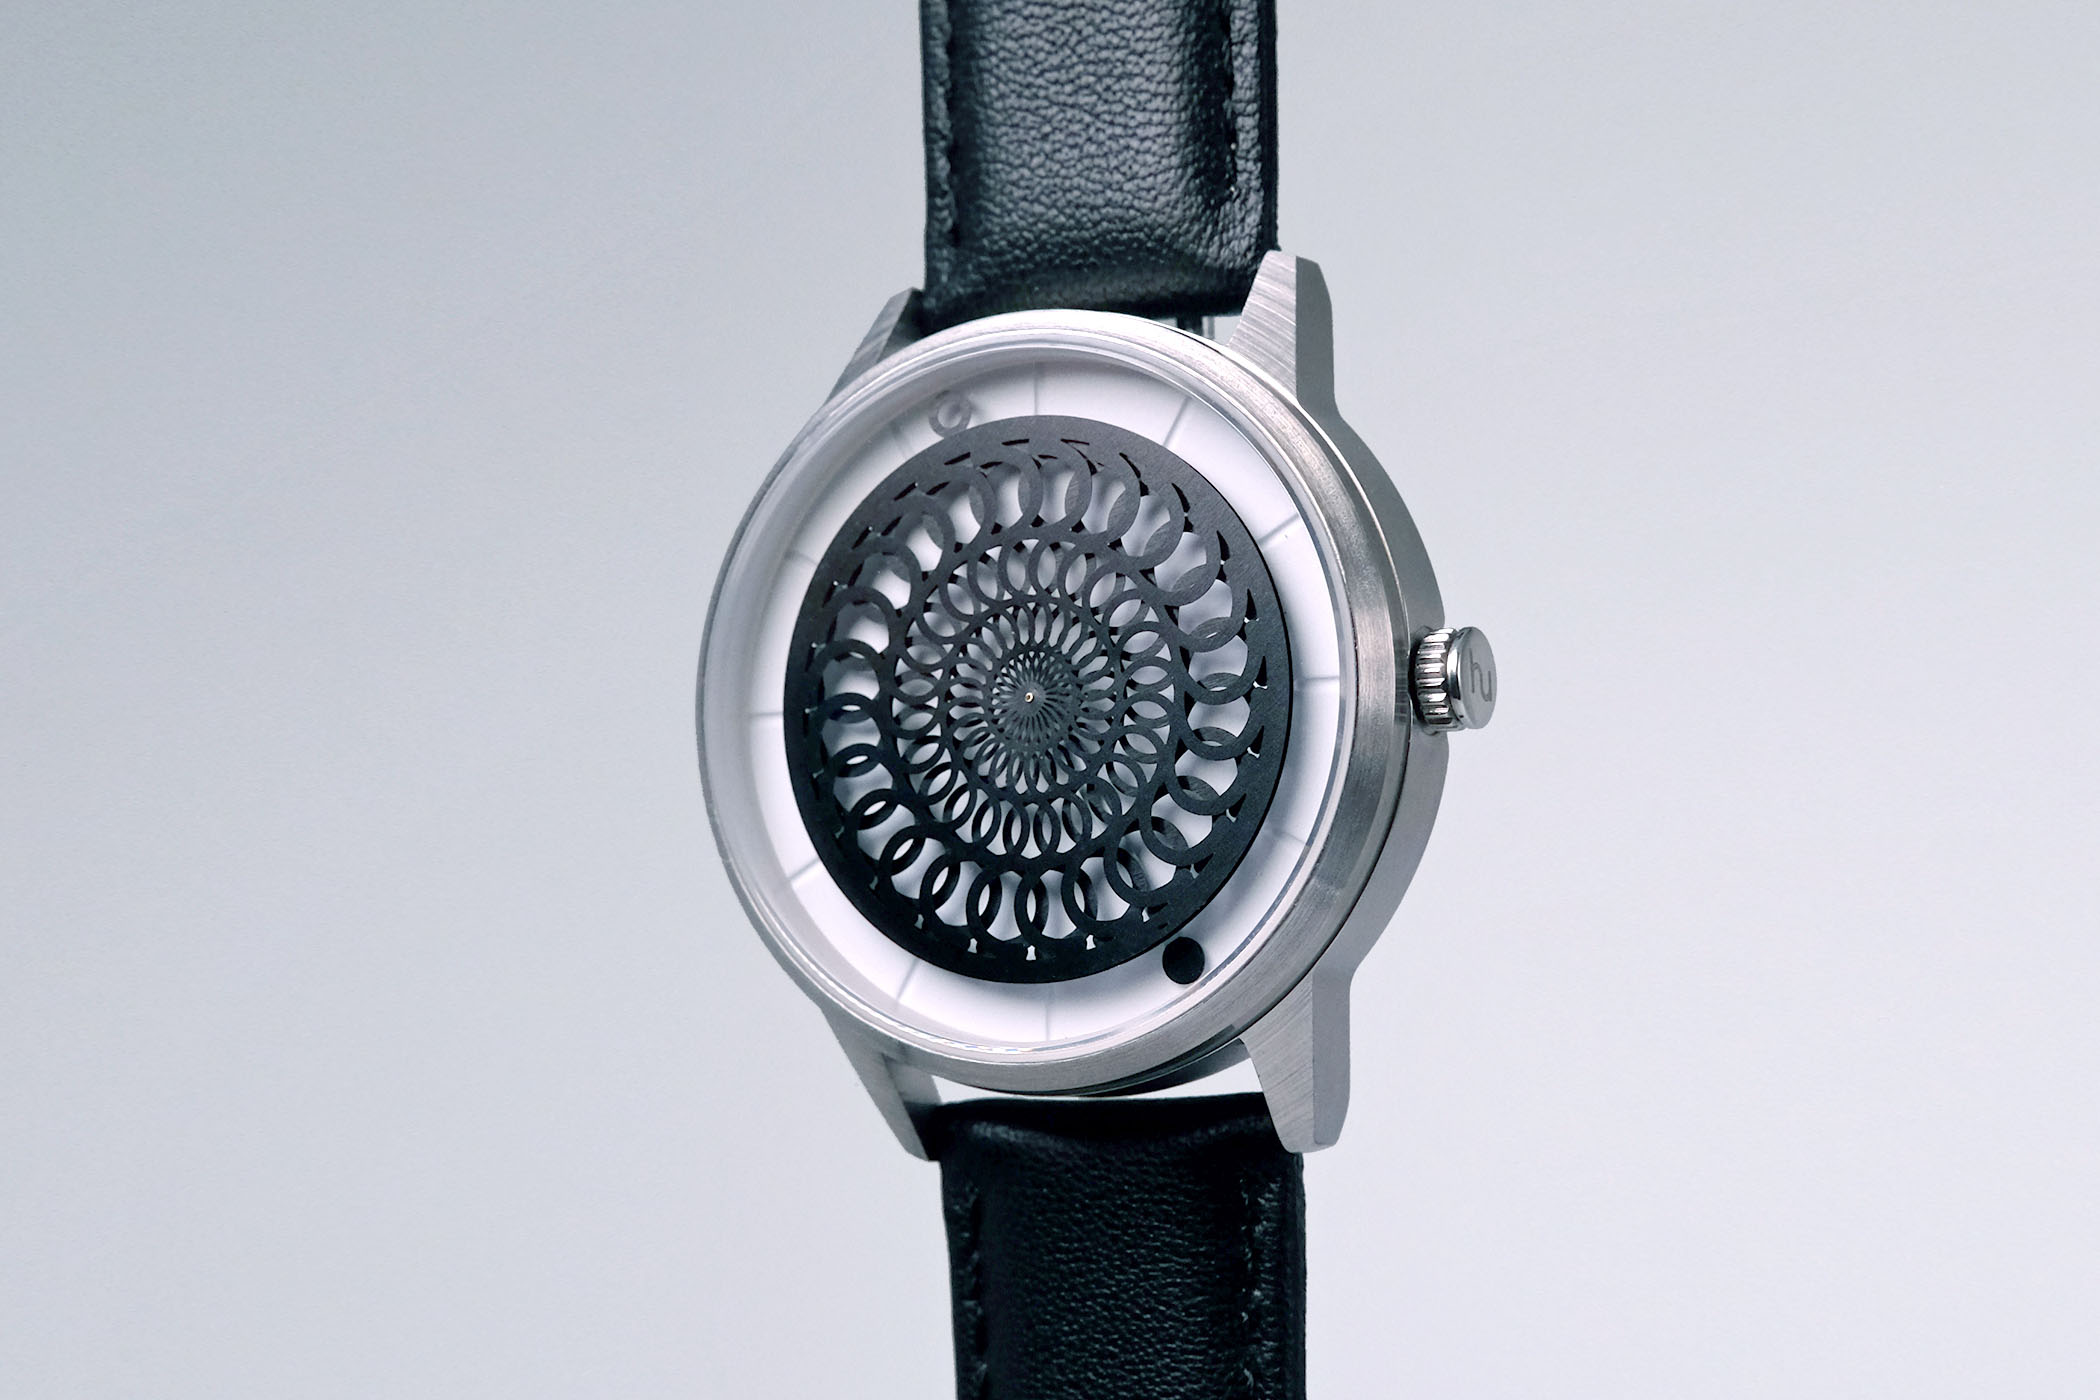 Humism Kinetic Art Automatic Watches - 3